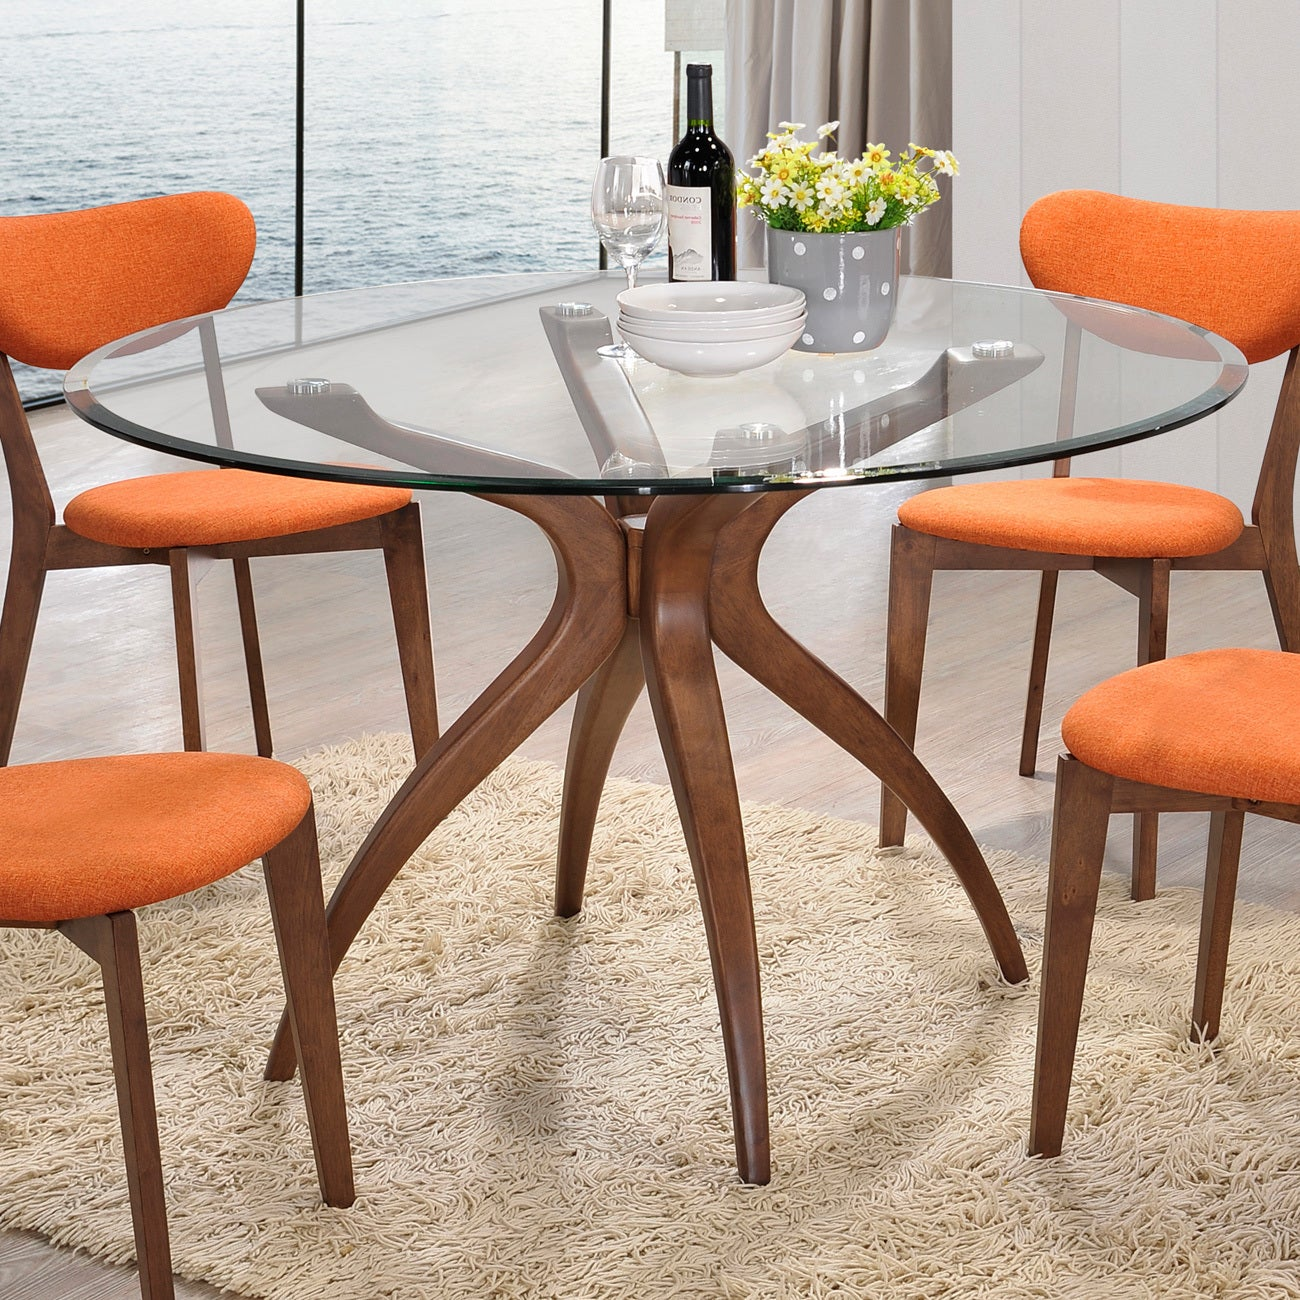 Aeon Furniture Quincy Dining Table Overstock 10225280